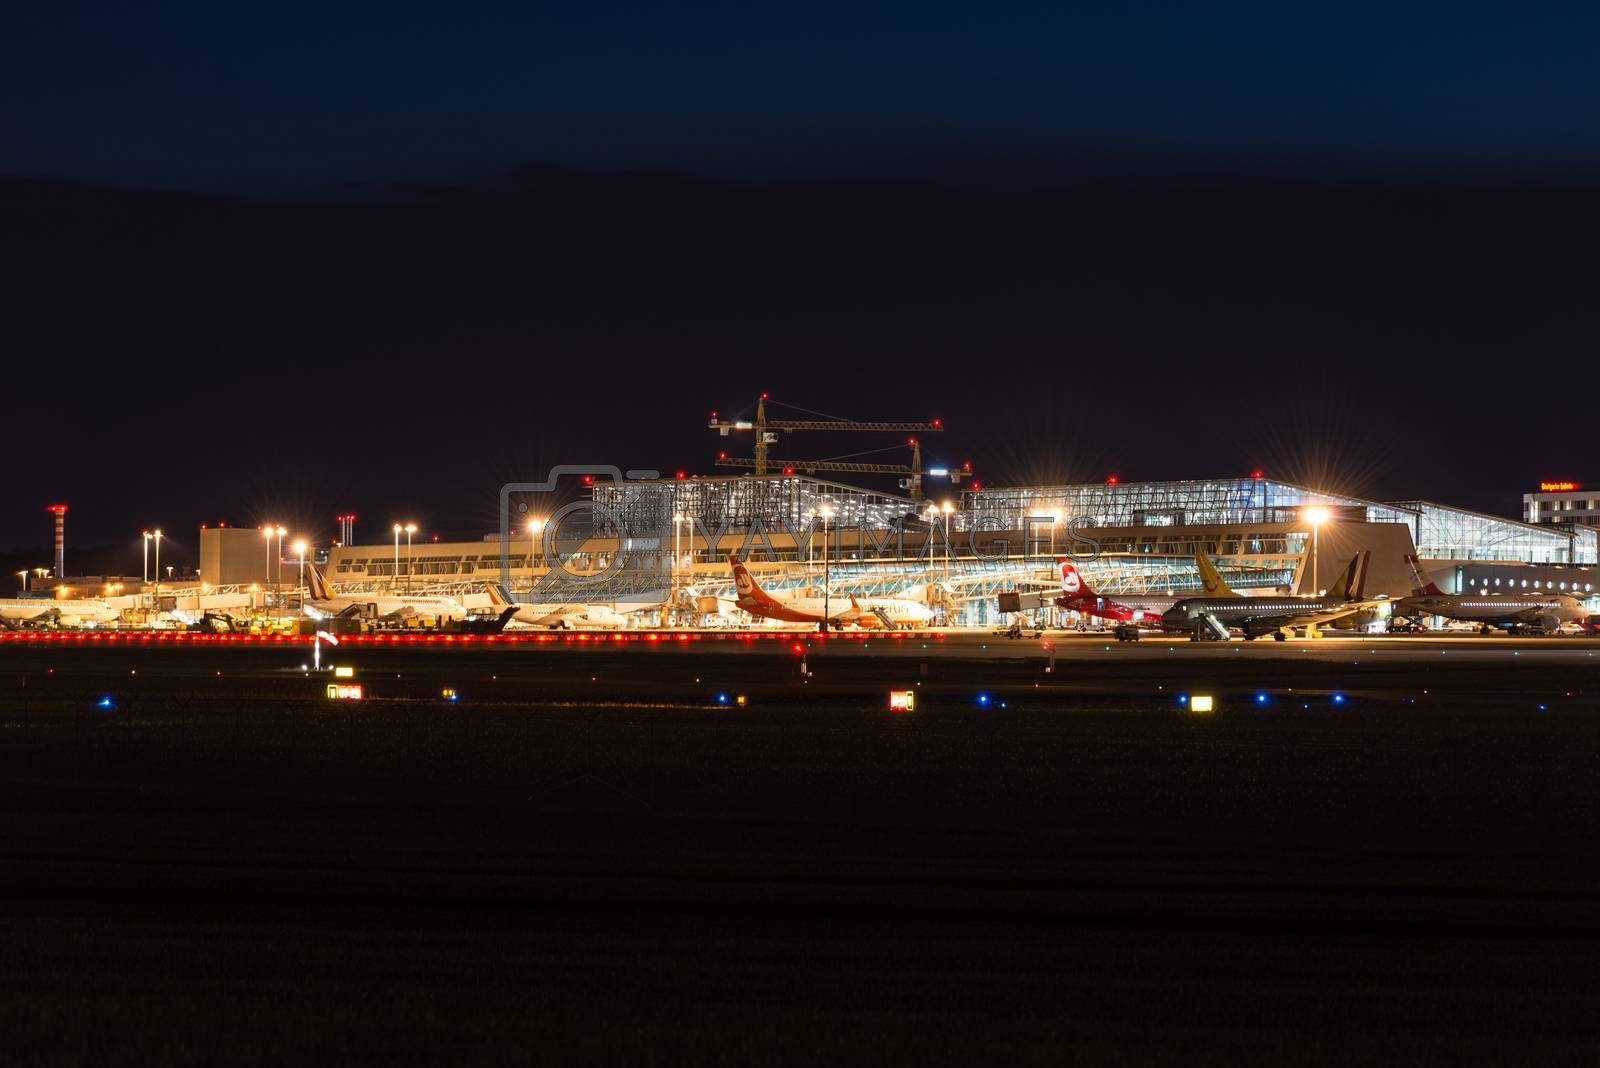 STUTTGART, GERMANY - MAY 6, 2014: Stuttgart Airport at dusk with planes departing and arriving as seen from over the fields on May, 6, 2014 in Stuttgart, Germany. Stuttgart Airport is the 6th biggest airport in Germany, having a capacity of 14 million people per year.